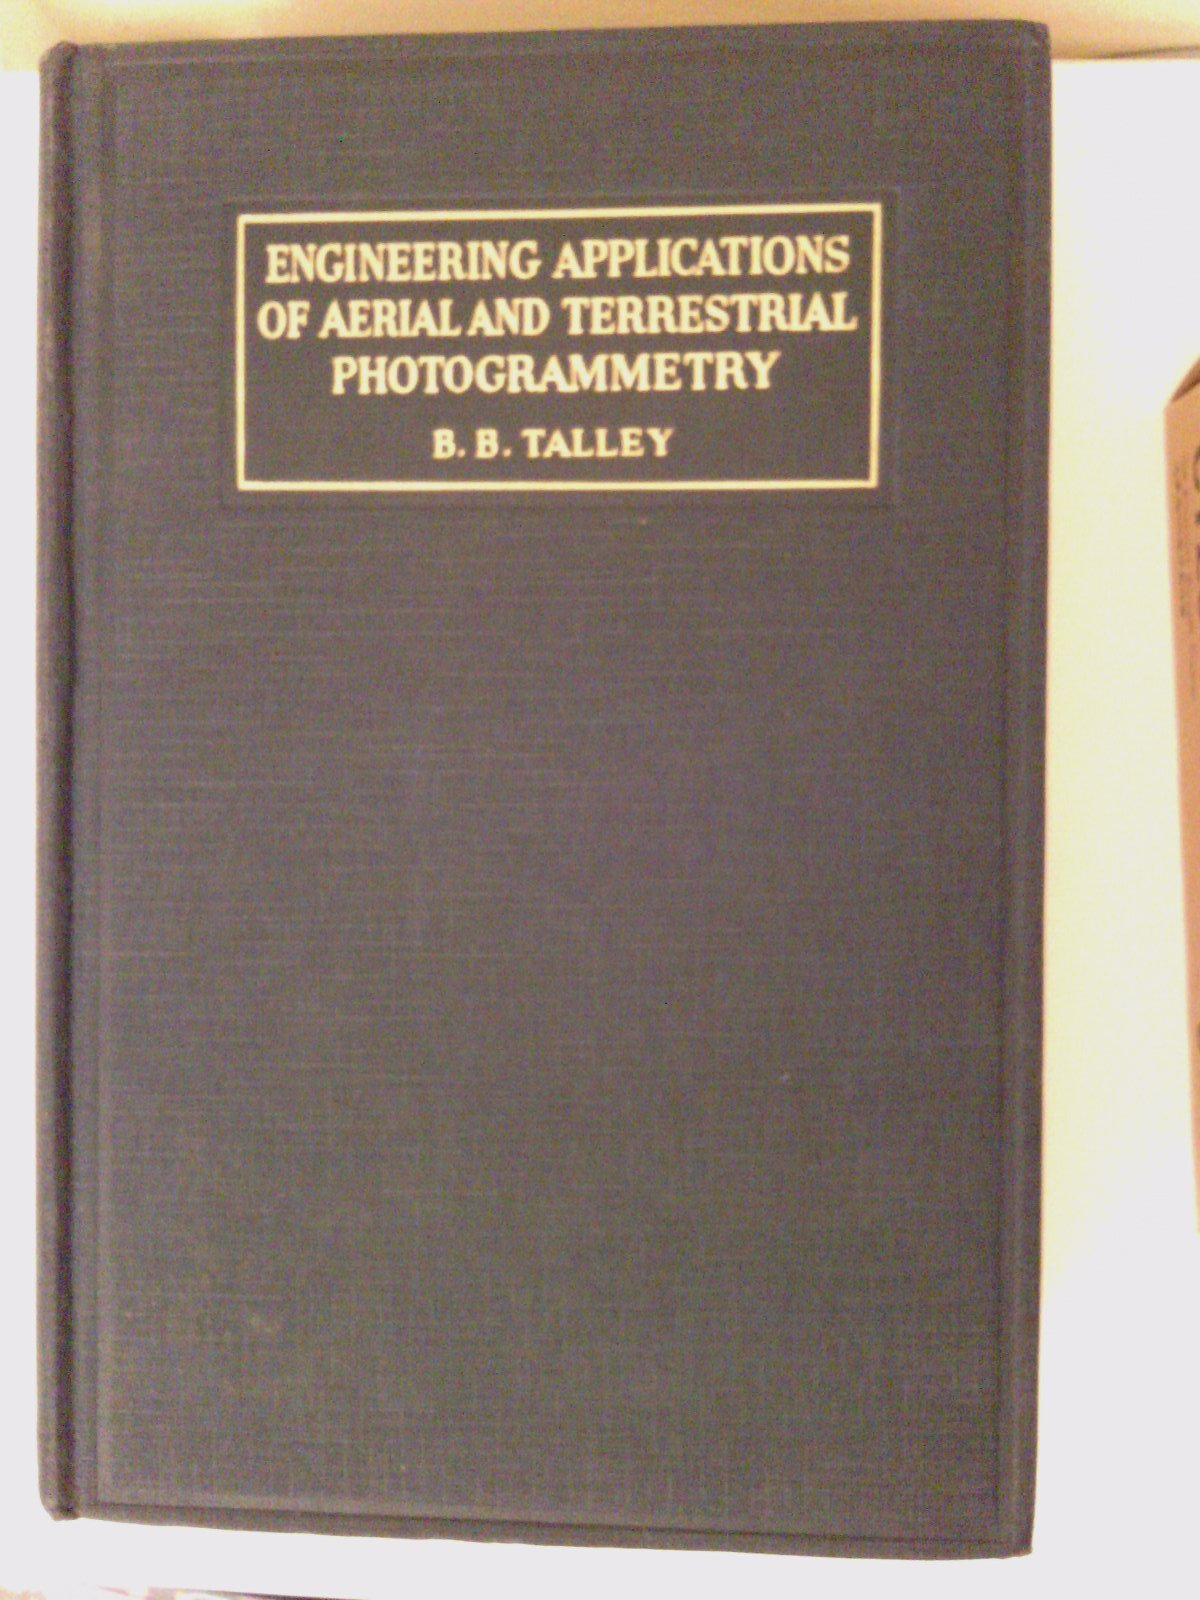 Engineering Applications Of Aerial And Terrestrial Photogrammetry Benjamin Branche Talley Amazon Books